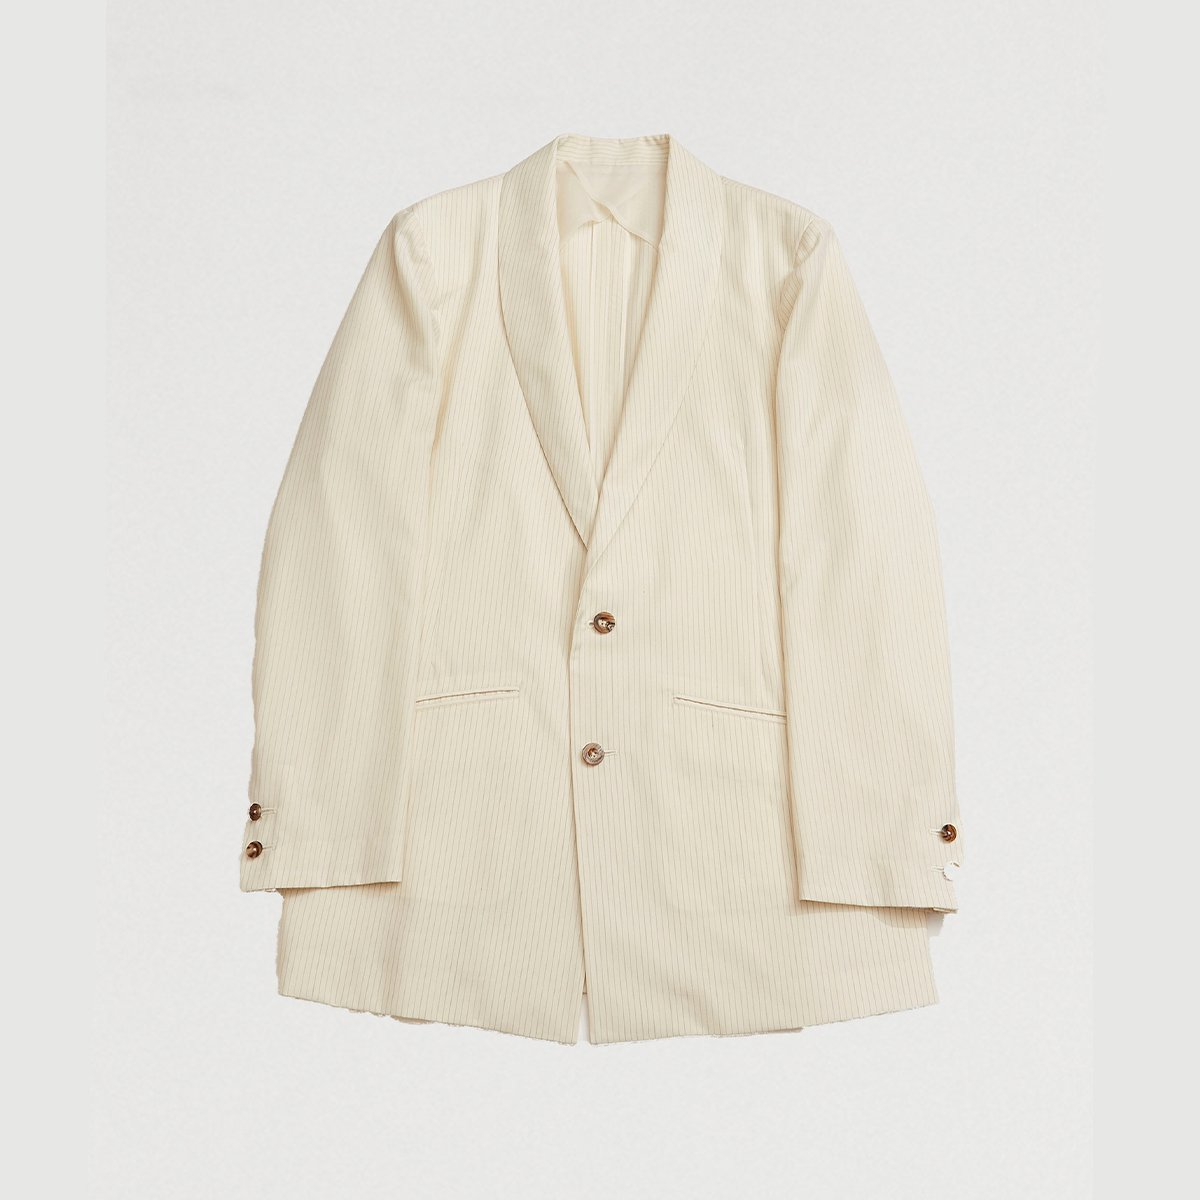 <img class='new_mark_img1' src='https://img.shop-pro.jp/img/new/icons47.gif' style='border:none;display:inline;margin:0px;padding:0px;width:auto;' />SHAWL COLLAR JACKET / IVORY STRIPE